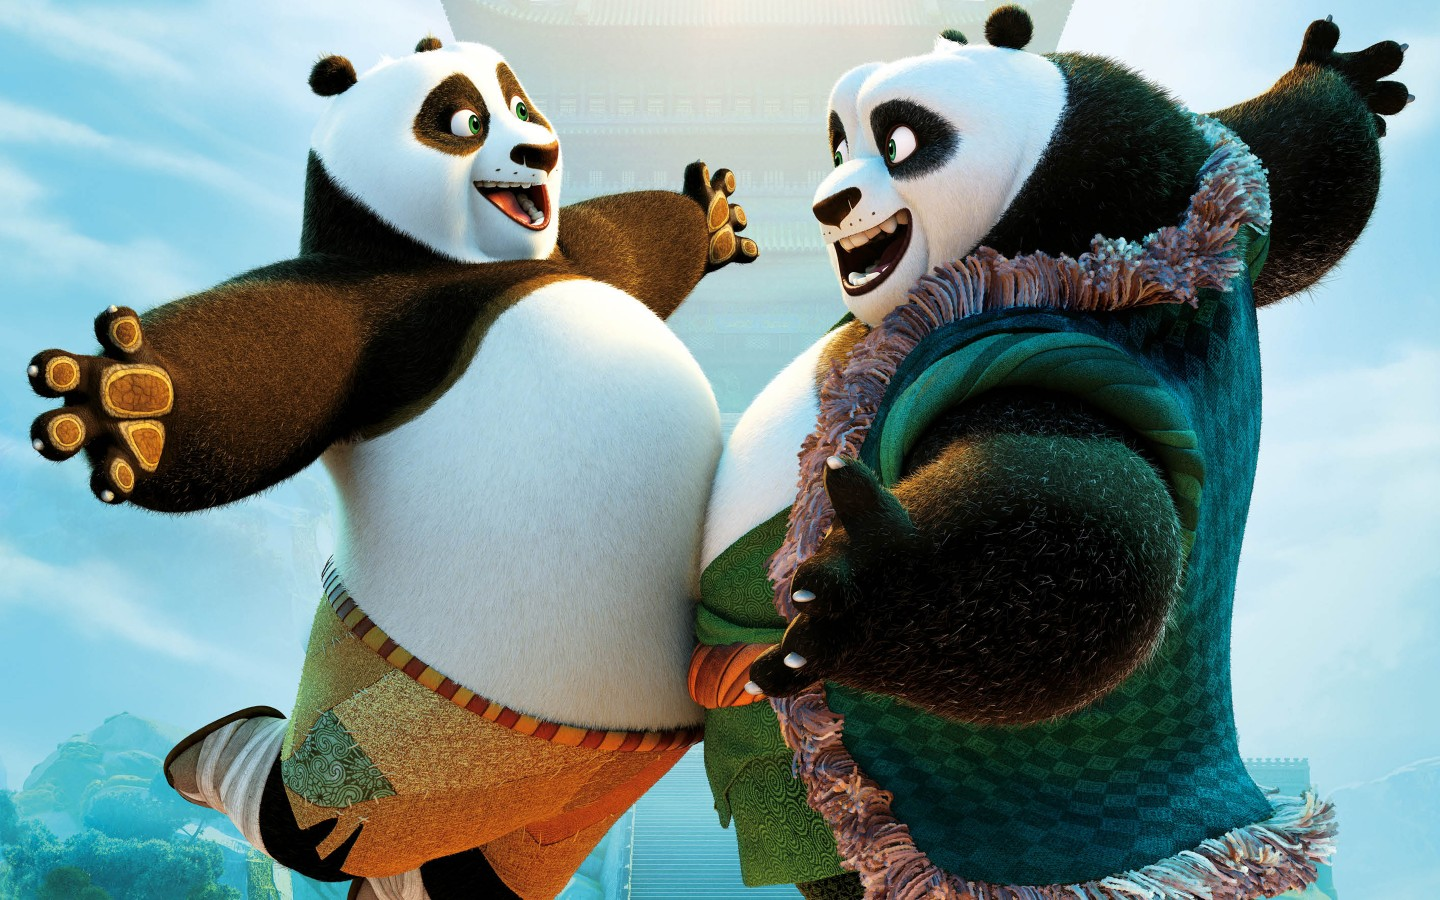 Cute Marvel Iphone Wallpaper Kung Fu Panda 3 2016 Animation Wallpapers Hd Wallpapers